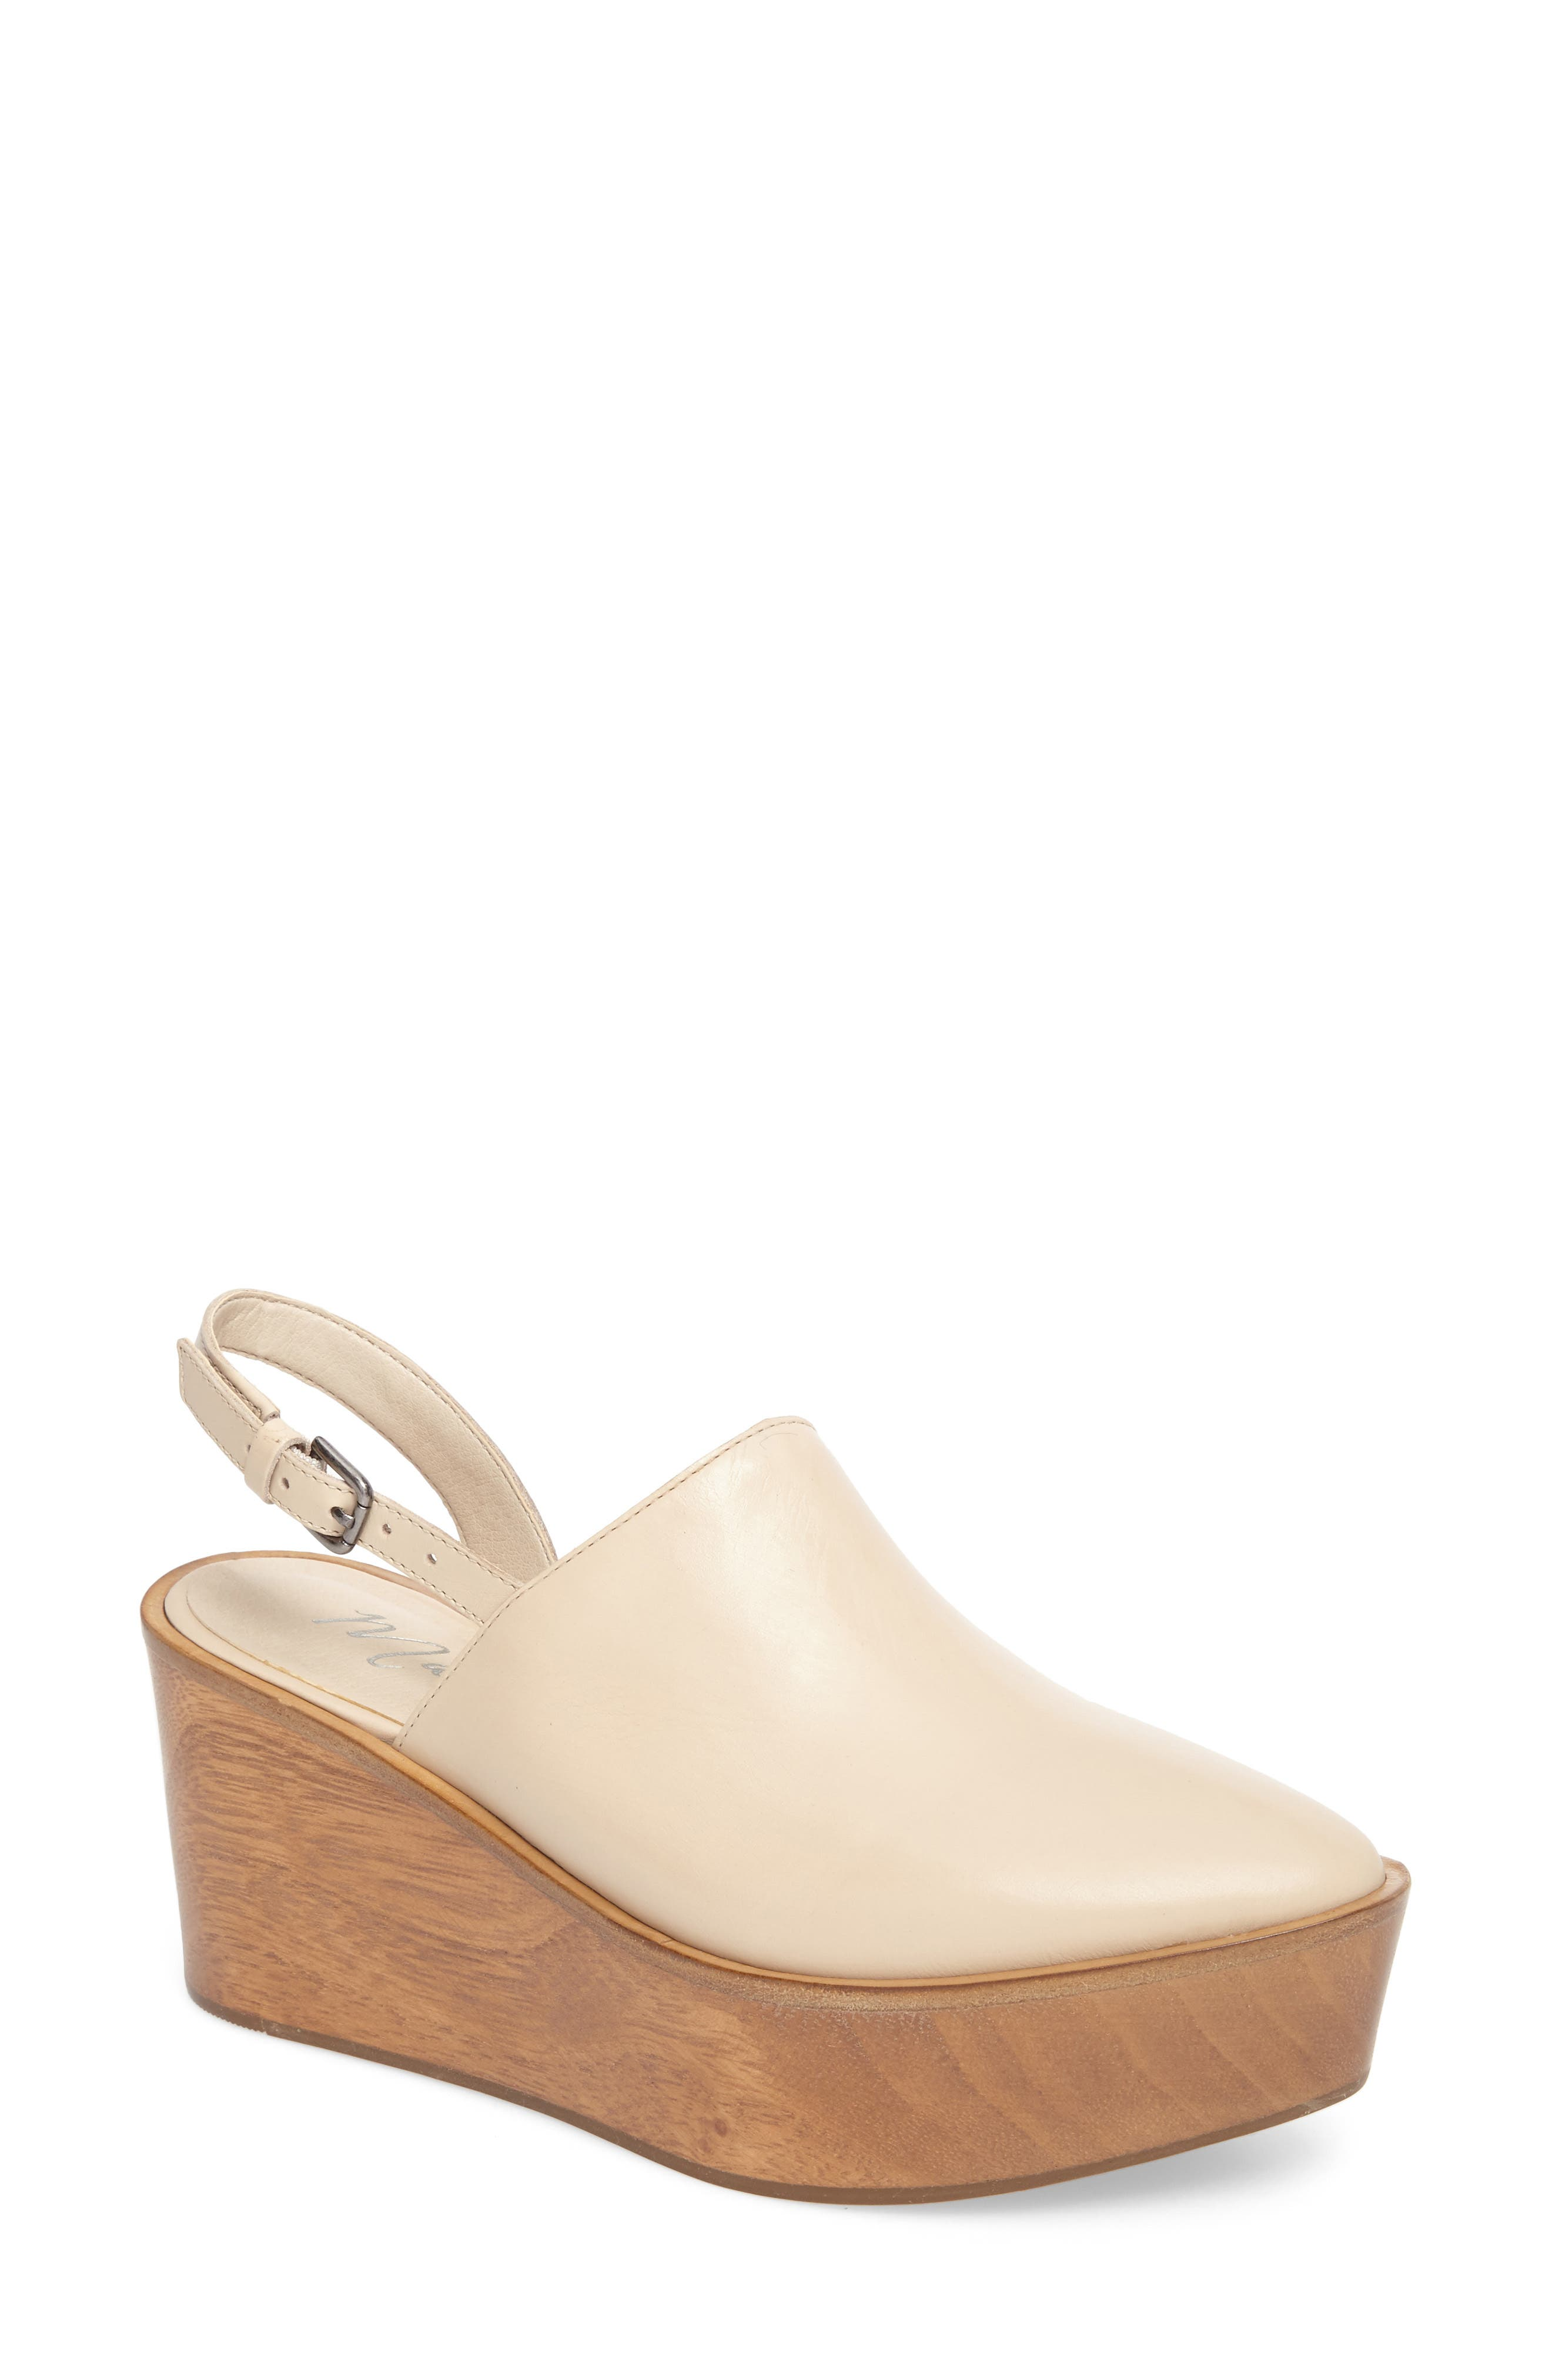 Eyals Slingback Platform Wedge Sandal,                             Main thumbnail 1, color,                             NATURAL LEATHER